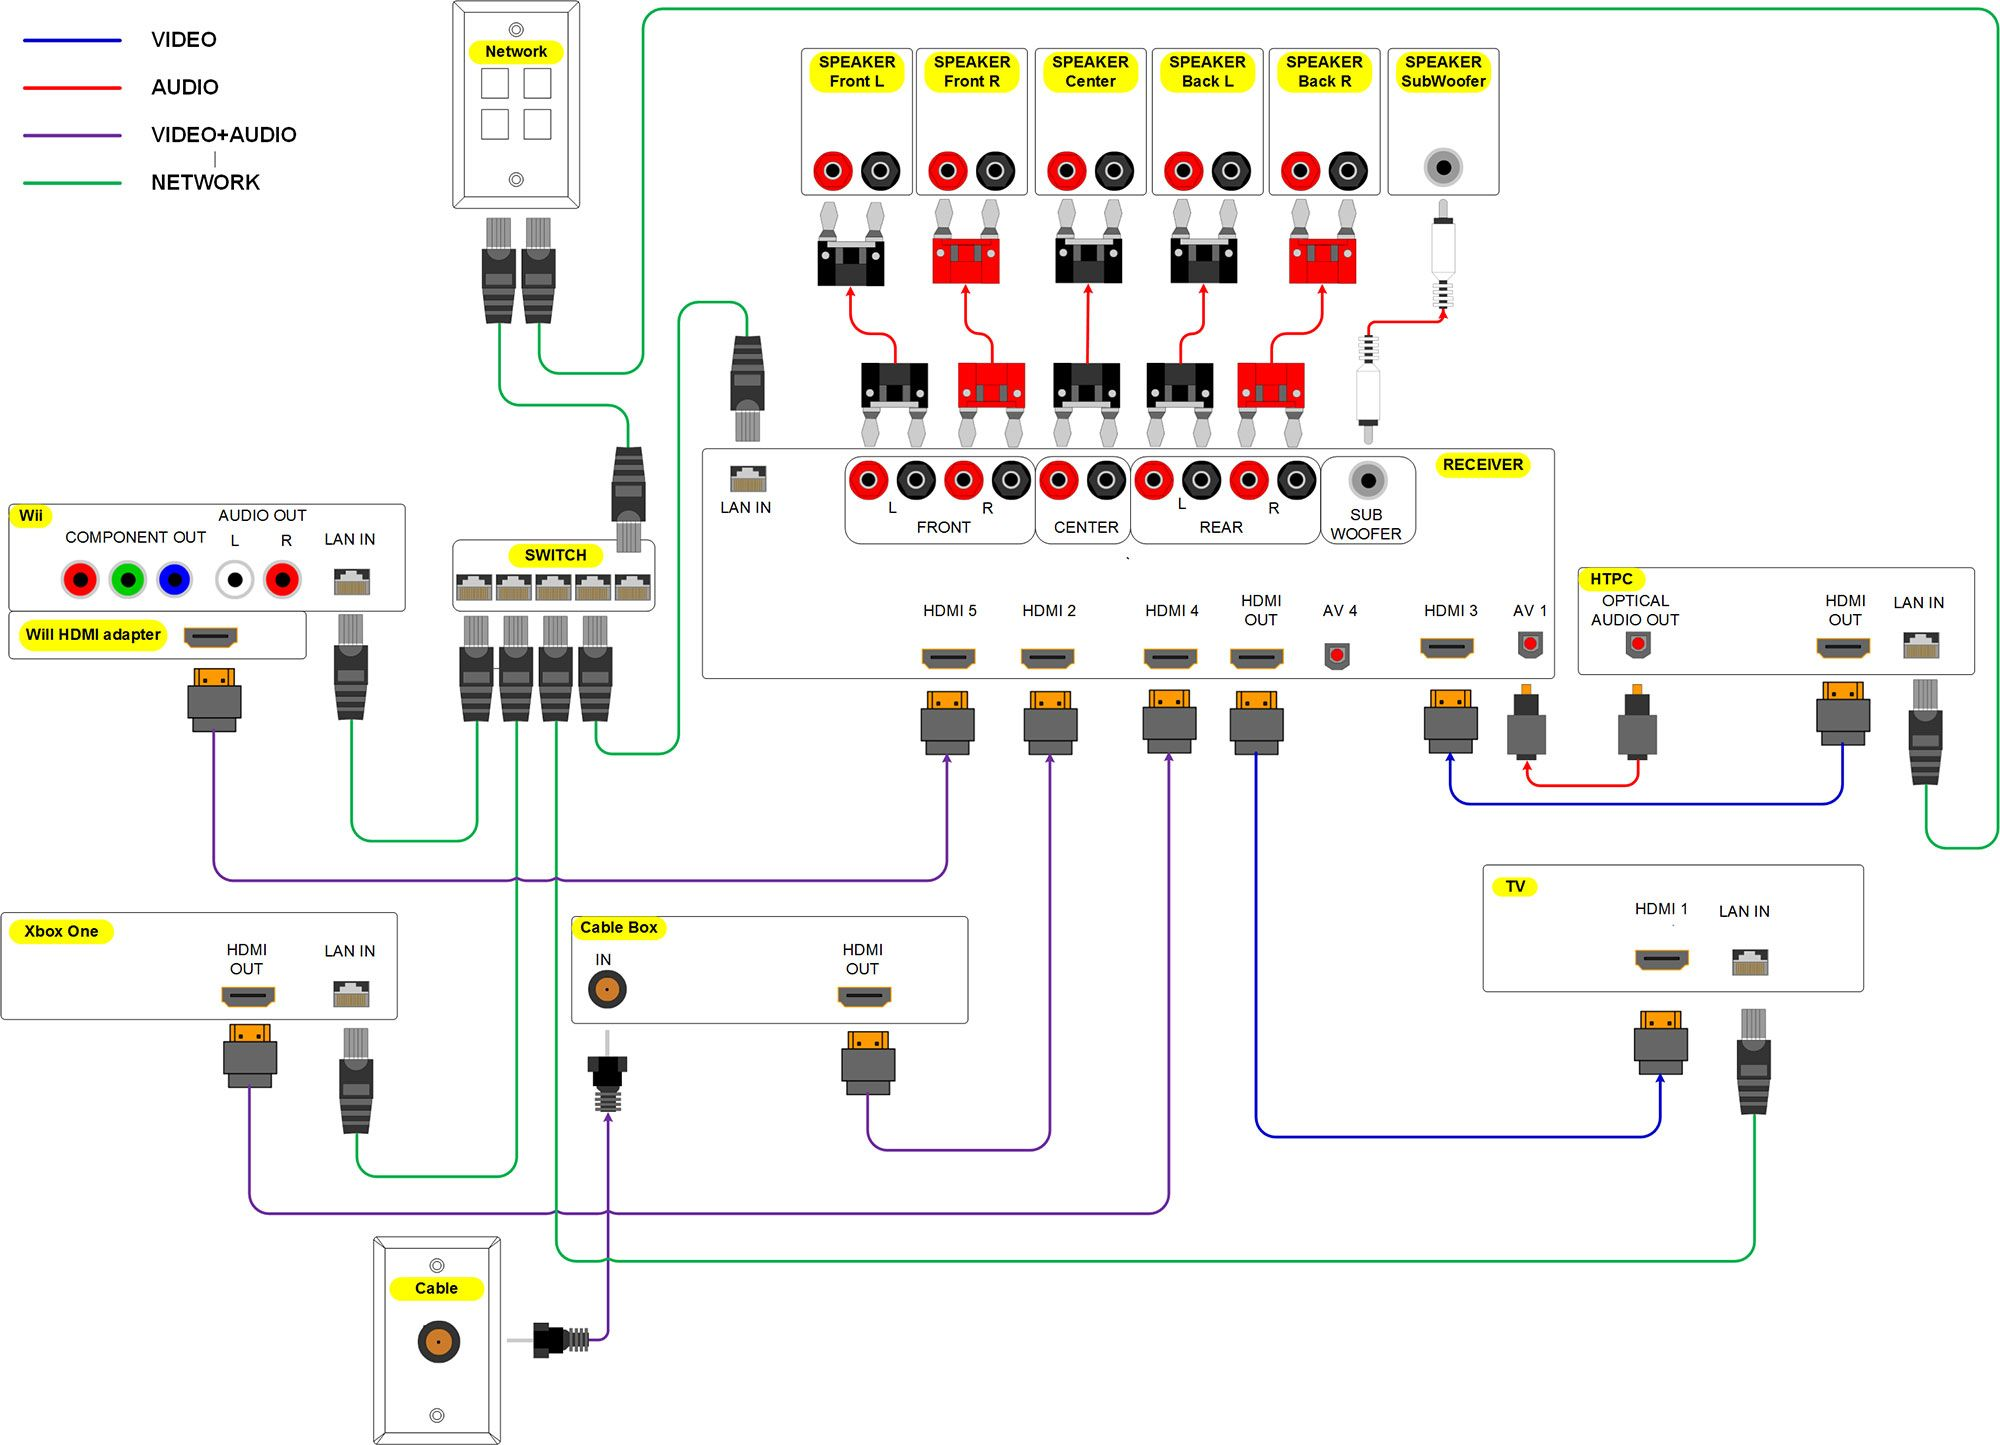 medium resolution of hdmi audio wiring diagram wiring diagram autovehicle hdmi audio wire diagram wiring diagramsbasic home theater connection